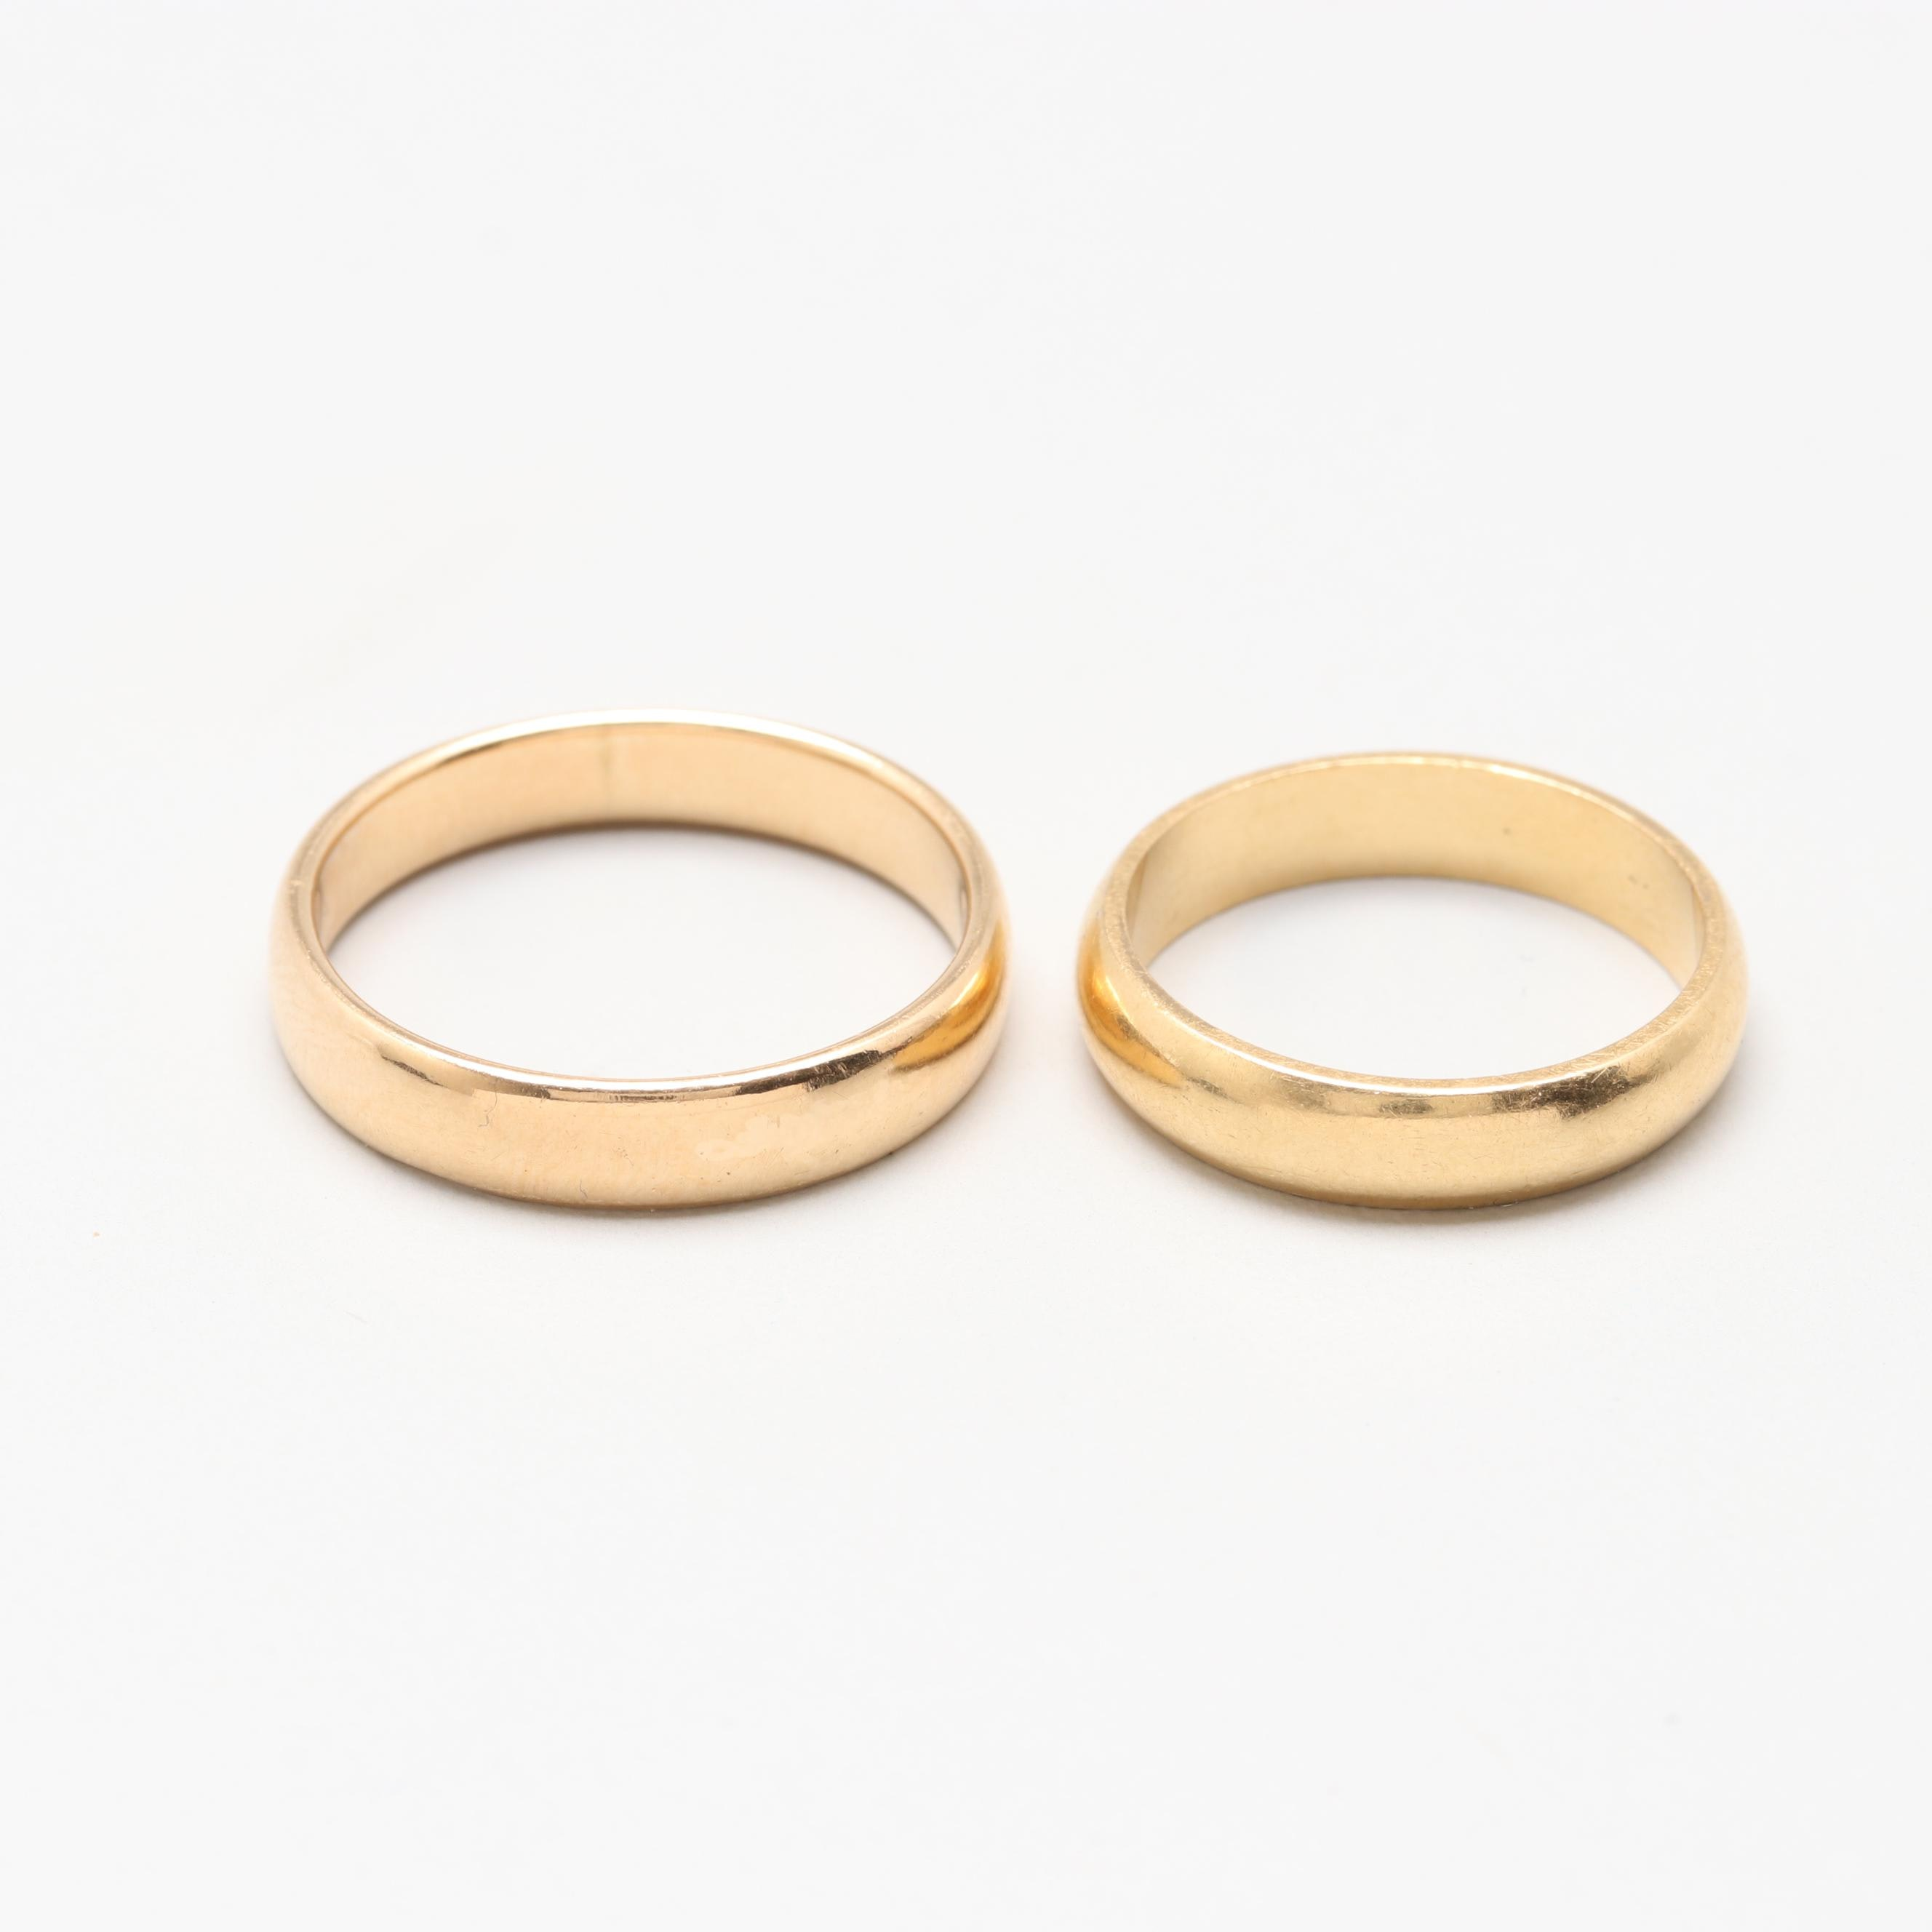 18K and 14K Yellow Gold Bands